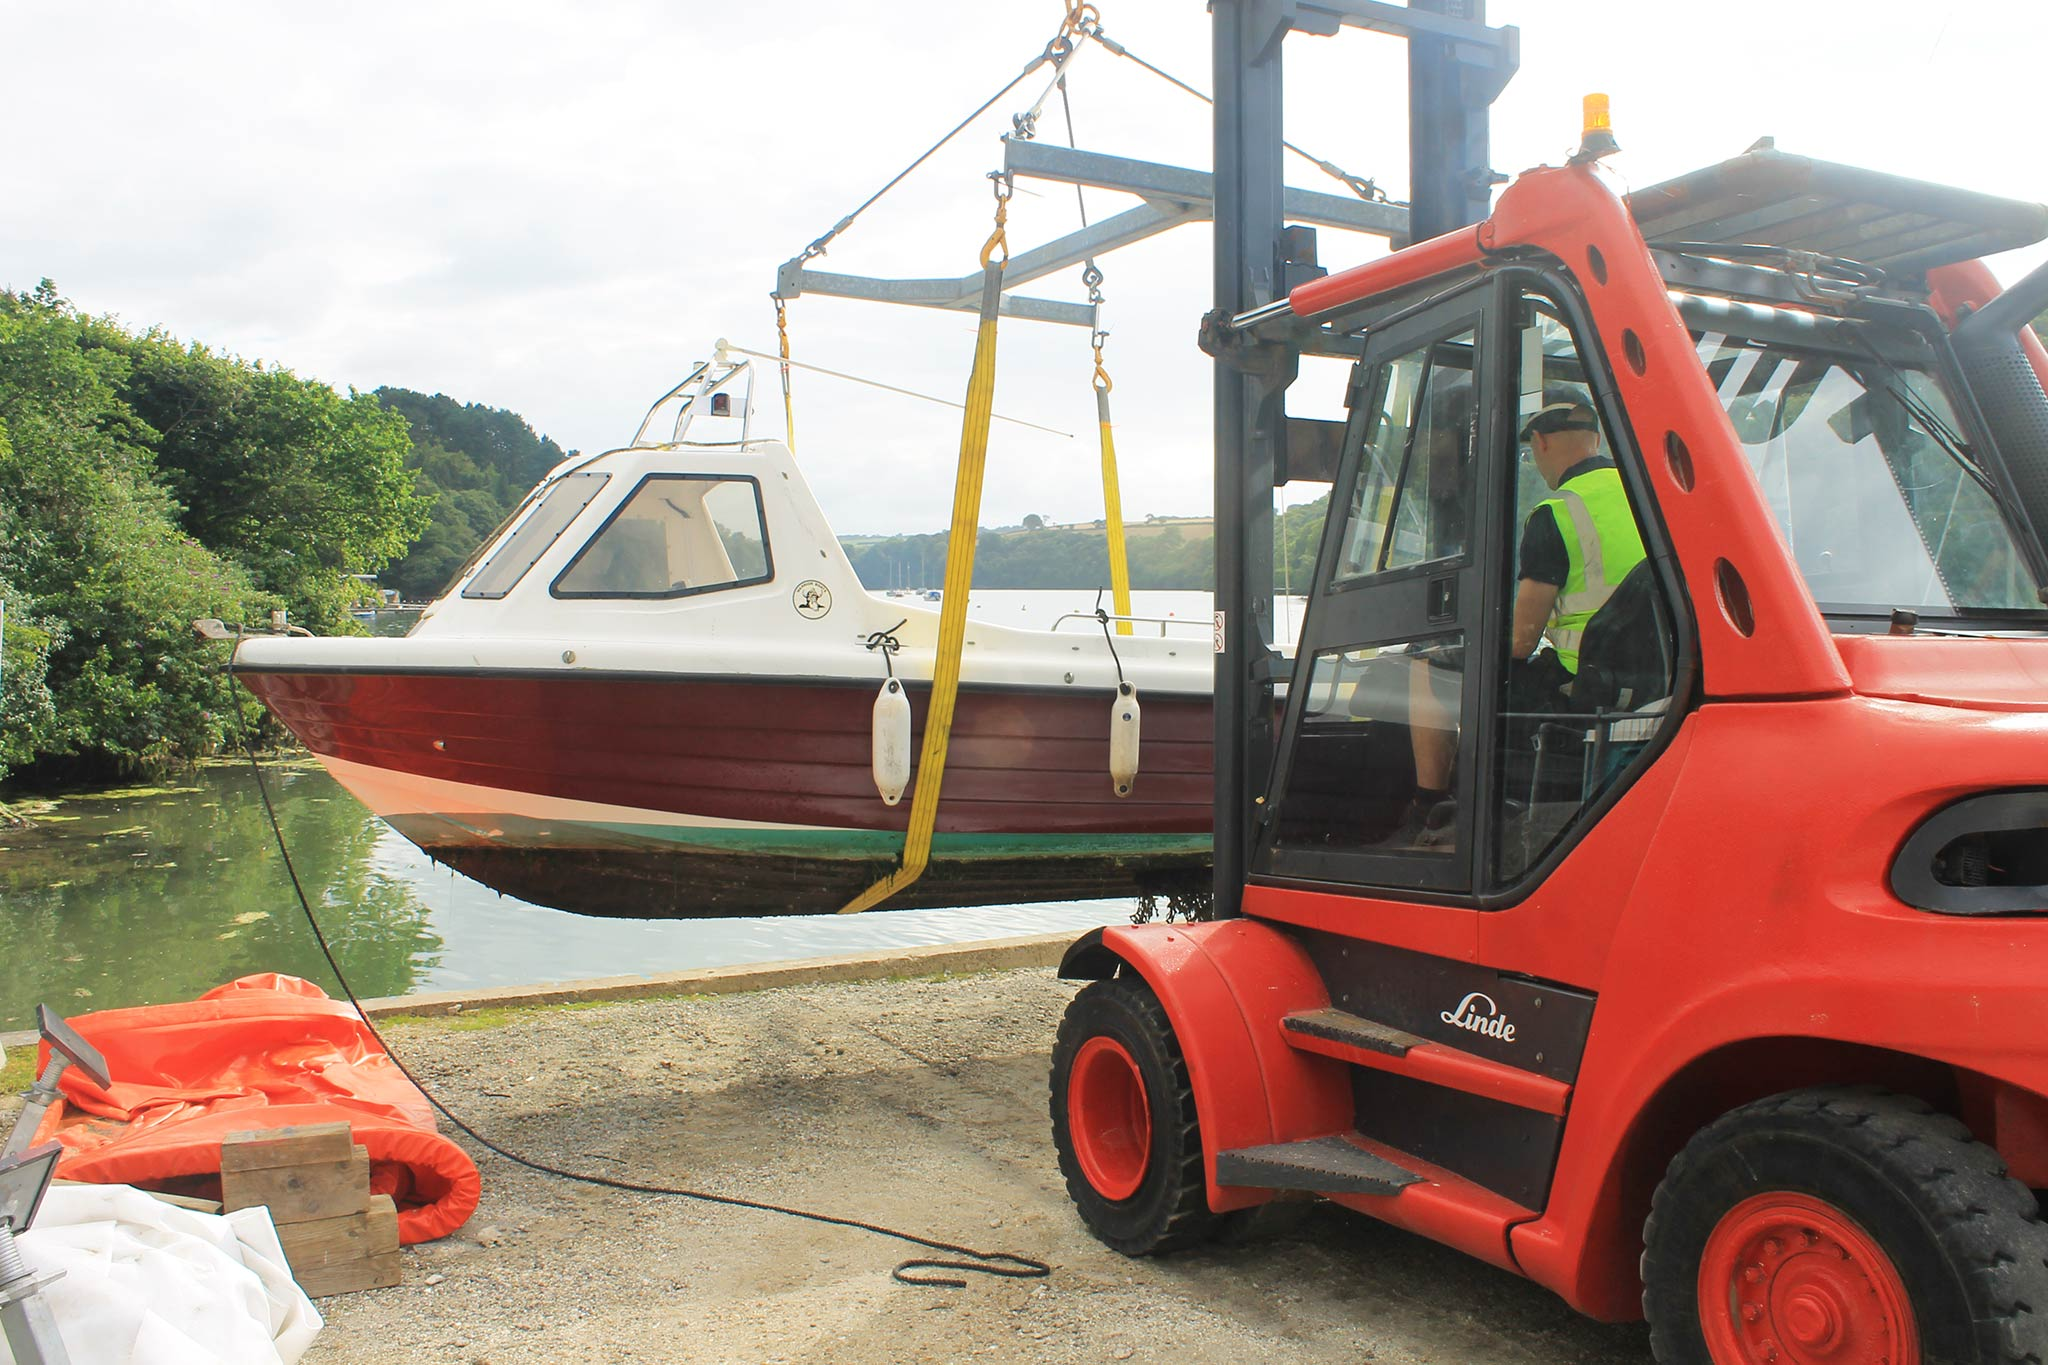 Boat lifting at Truro Boat Services, Malpas, Cornwall